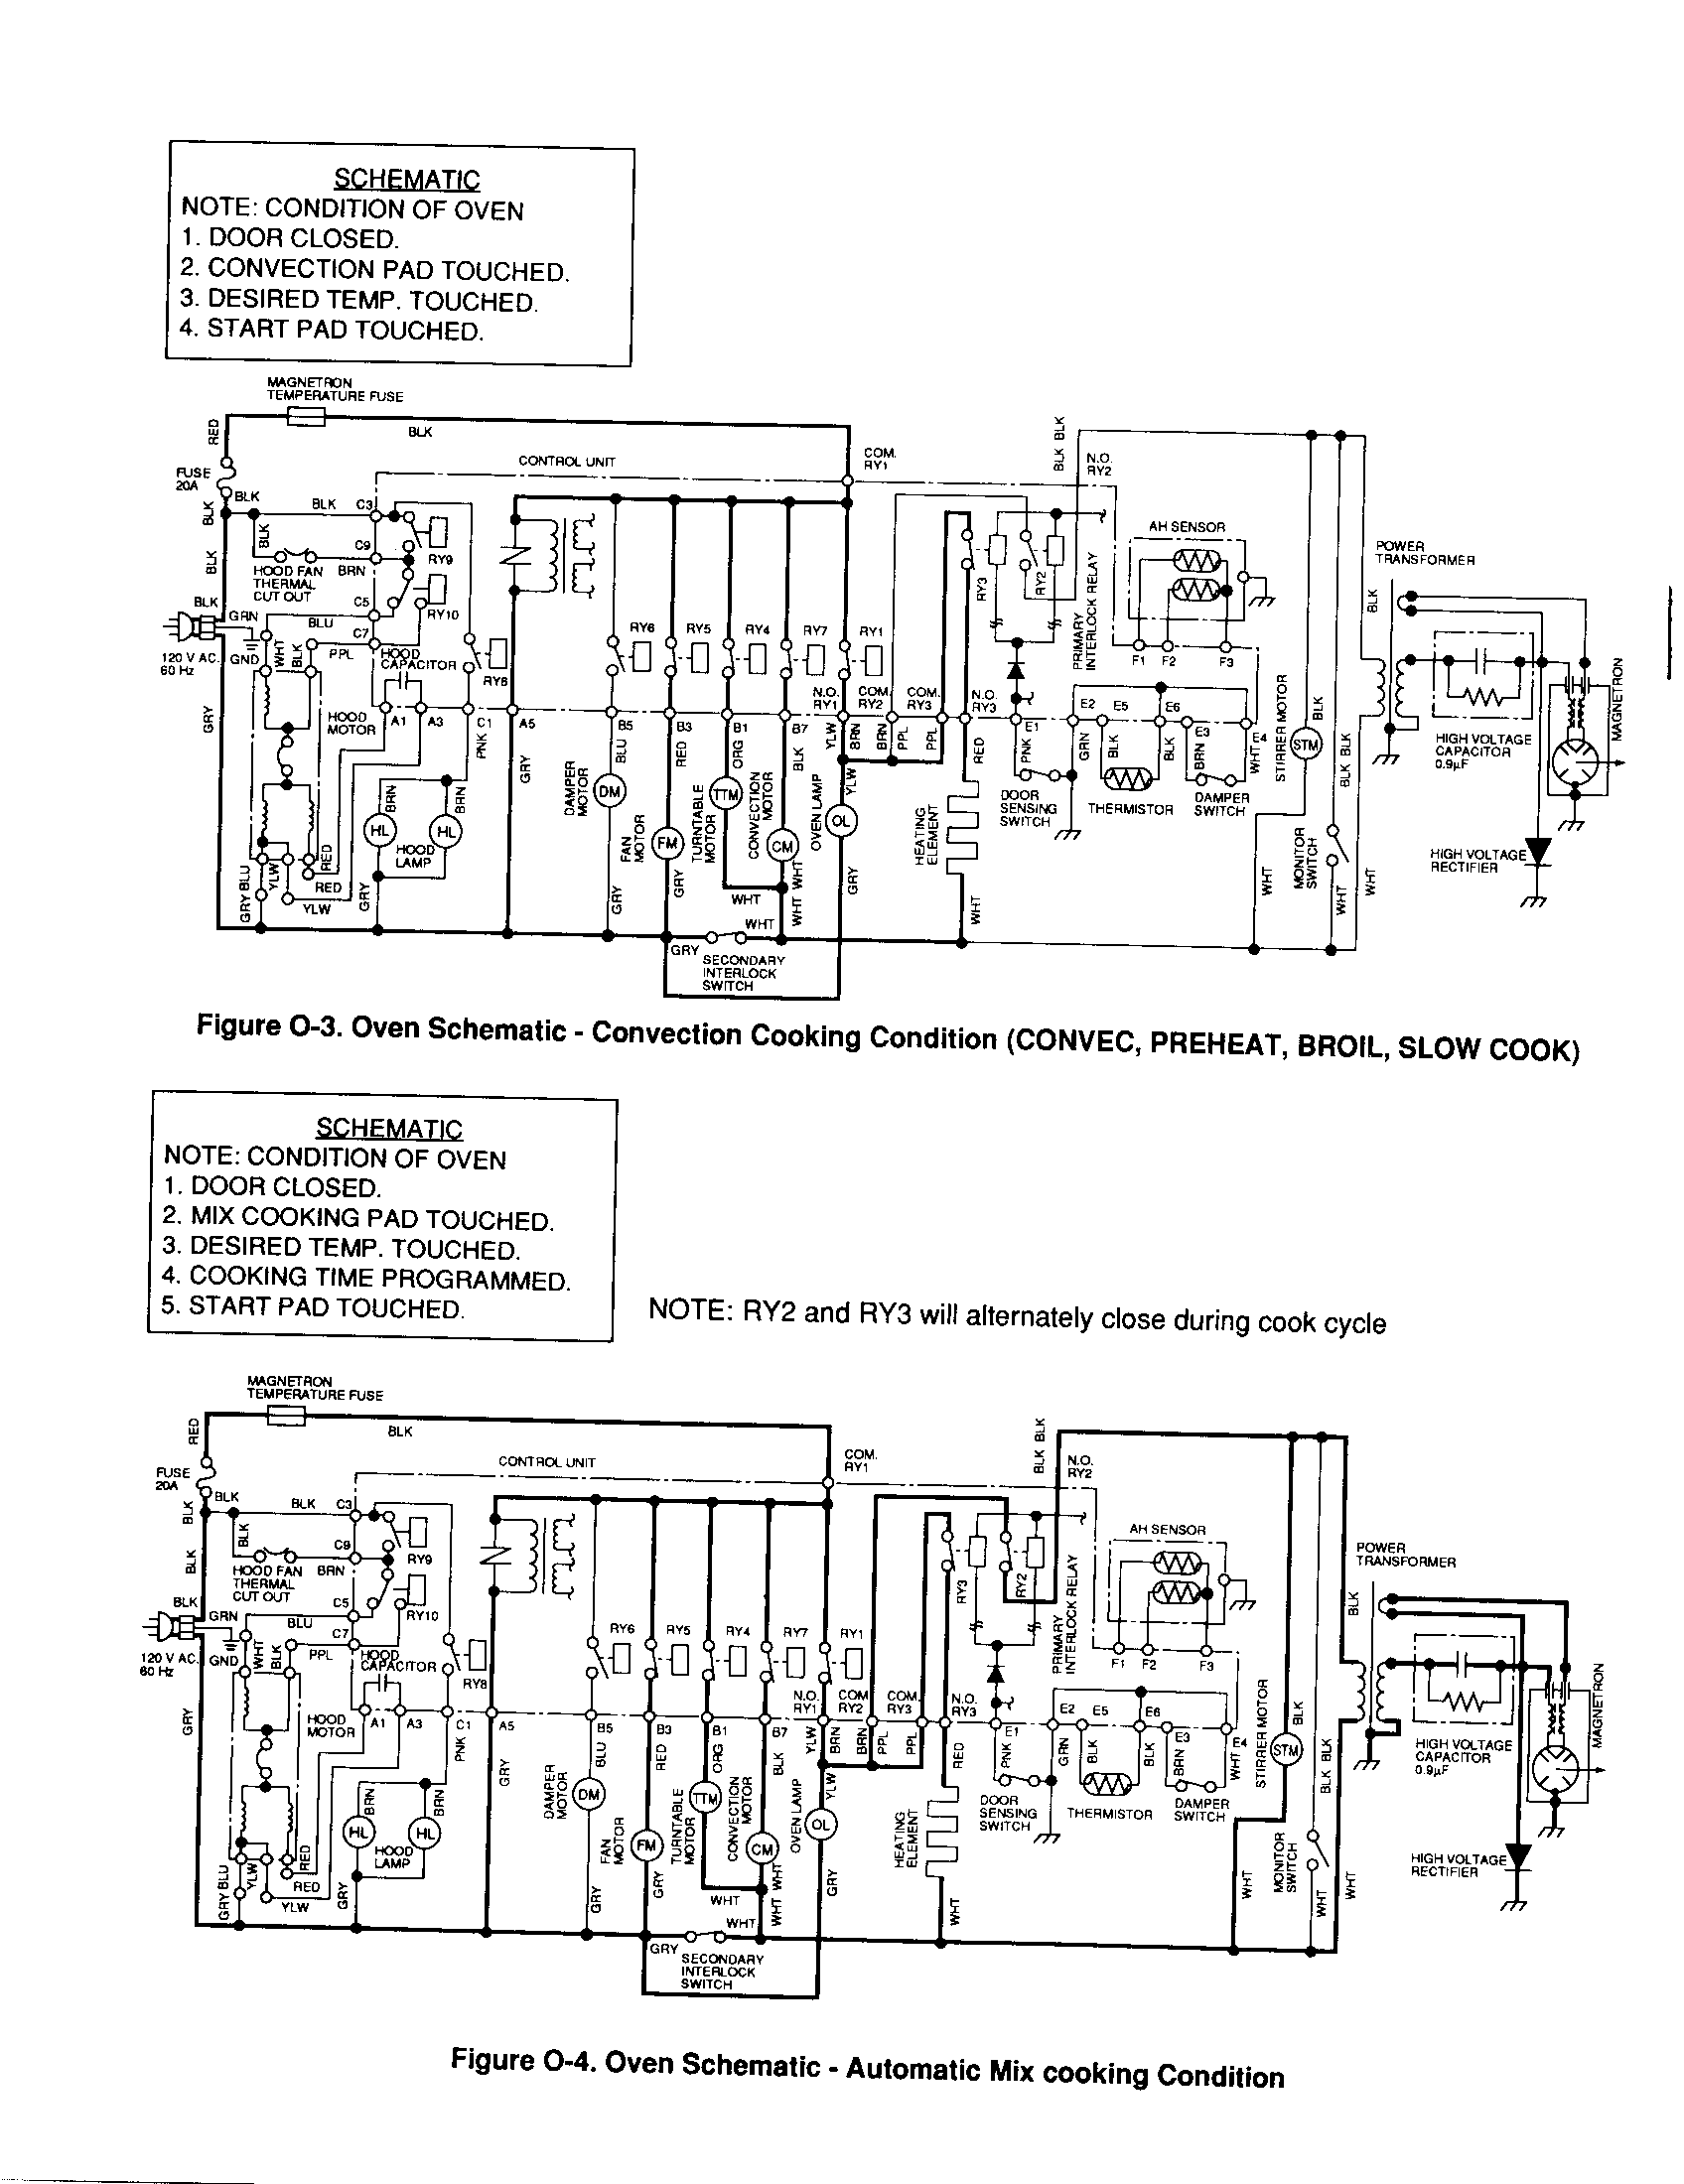 OVEN SCHEMATIC Diagram & Parts List for Model r1851 Sharp